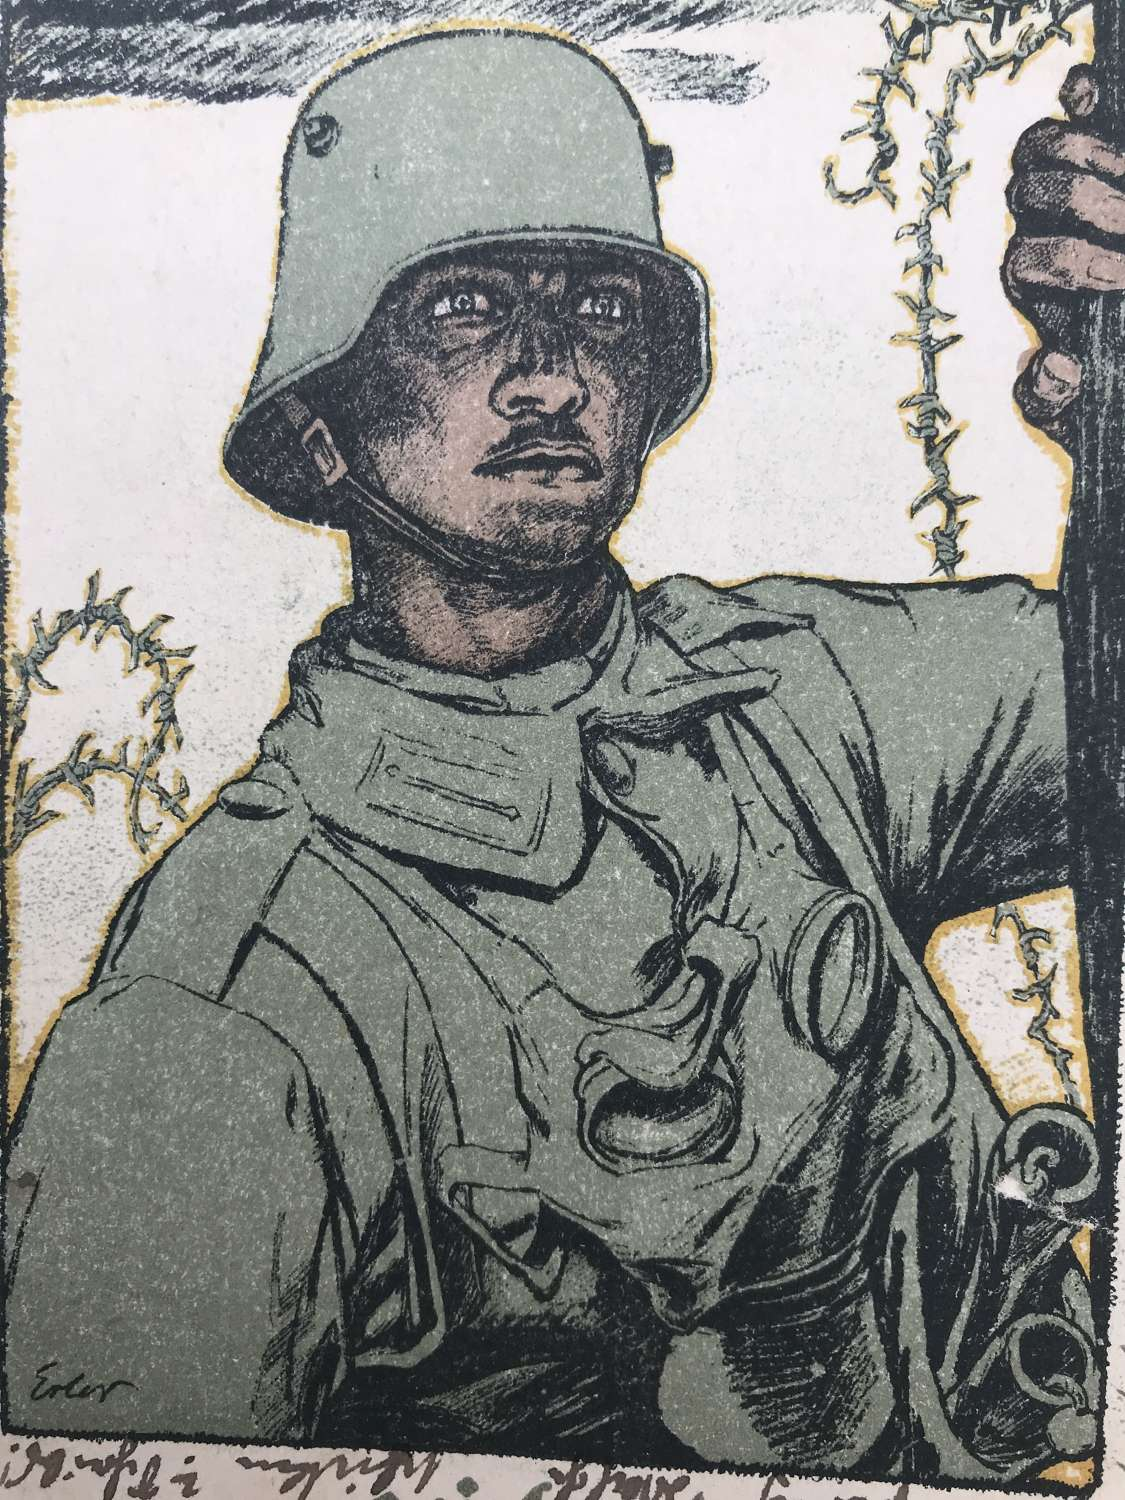 German First World War propaganda postcard dated 1917